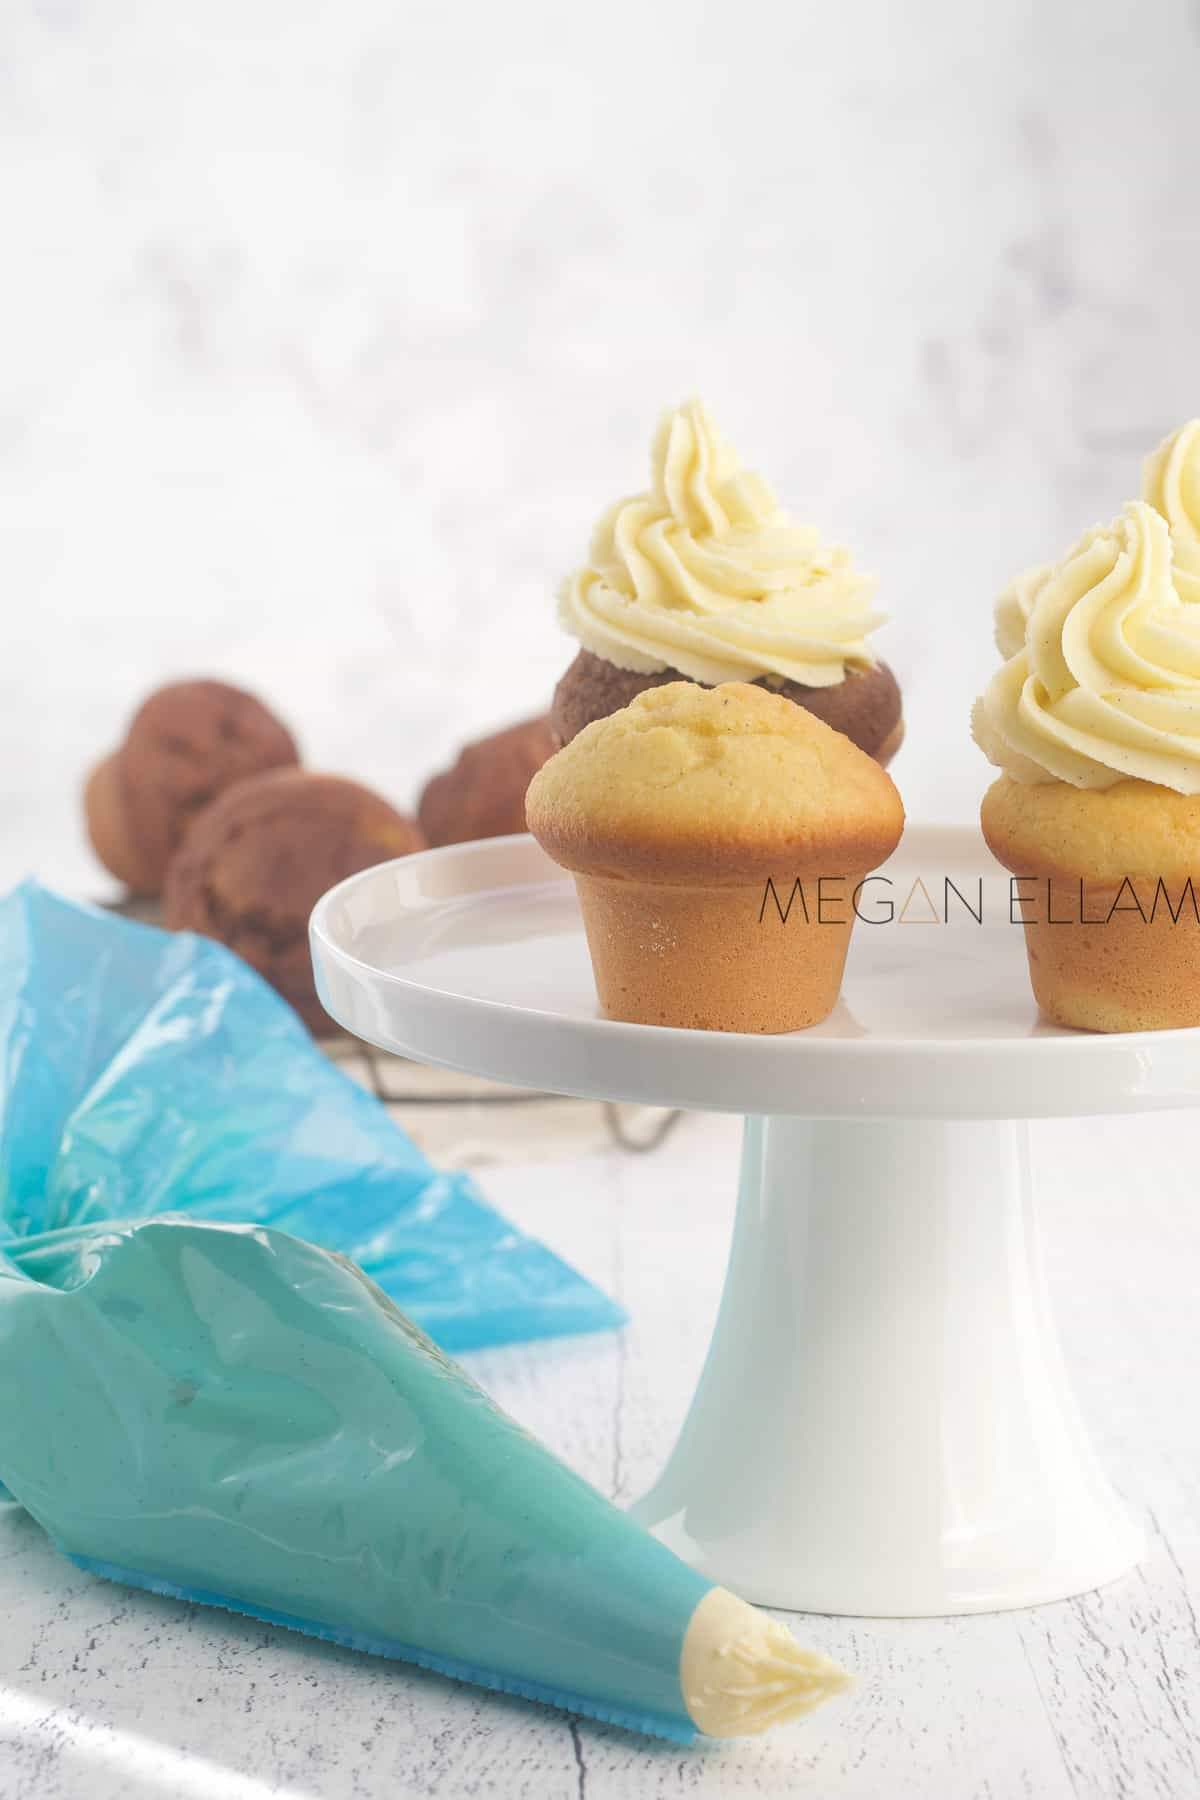 Iced cupcakes on a white cake stand.